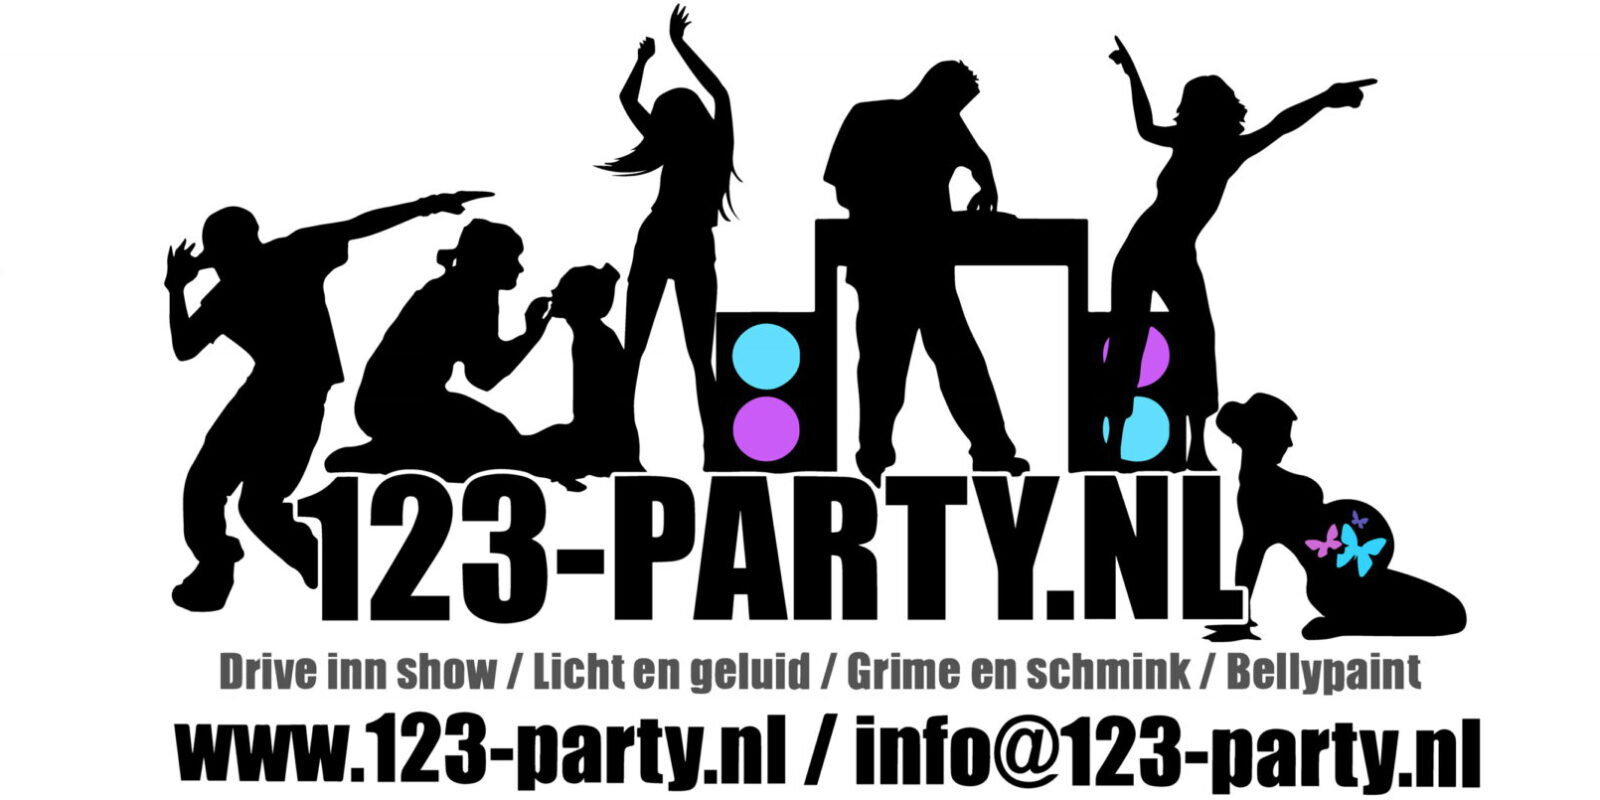 123-party.nl